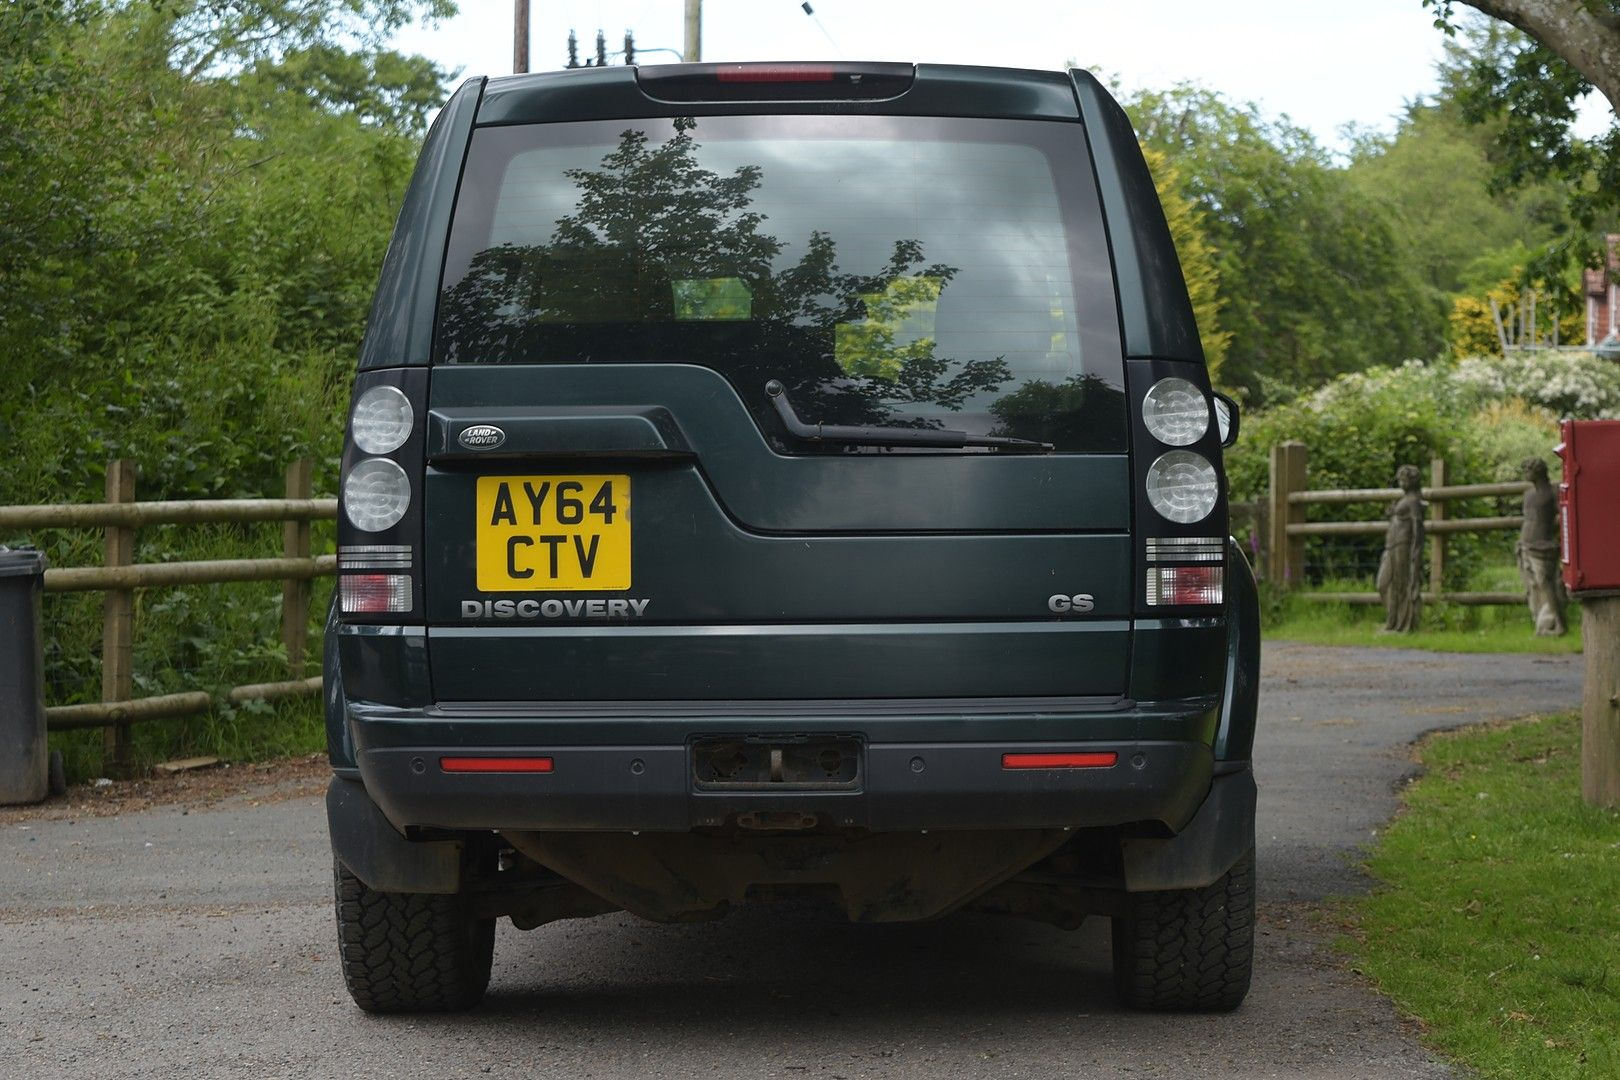 LAND ROVER Discovery 3.0 SDV6 GS - Thumbnail 6